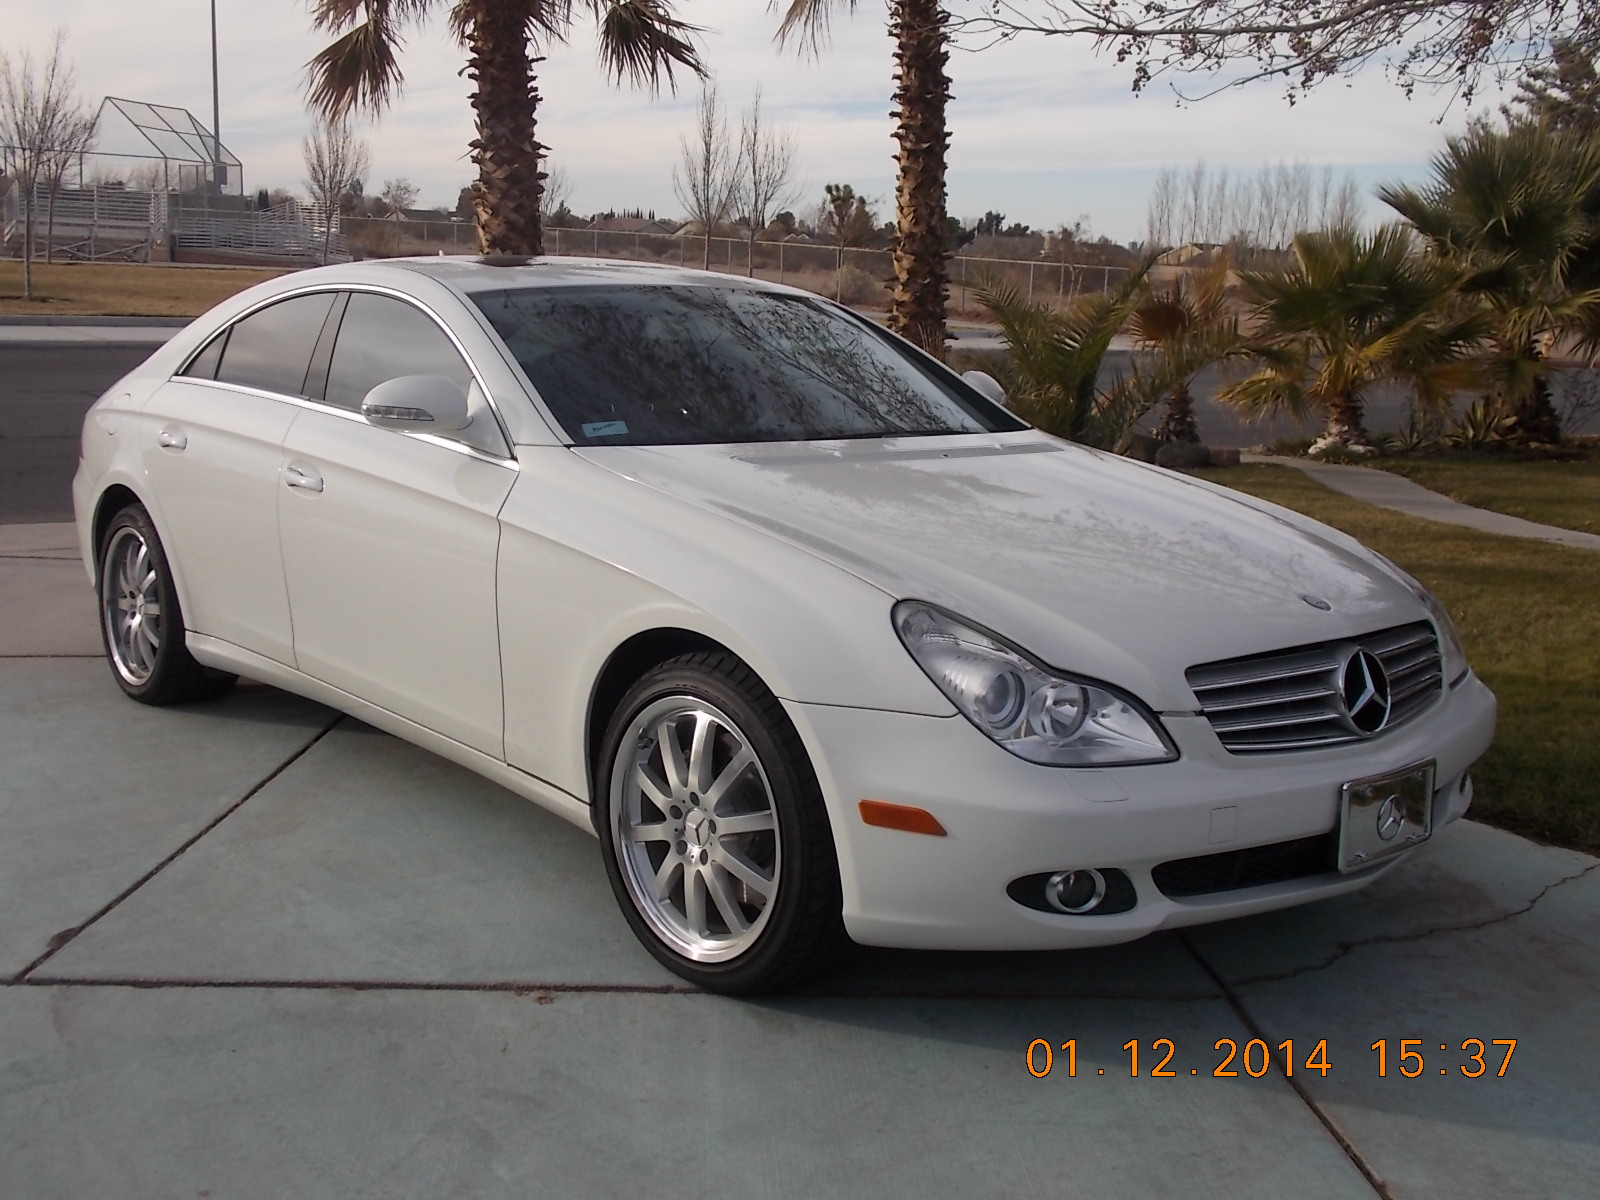 2007 mercedes benz cls class pictures cargurus for Mercedes benz cls550